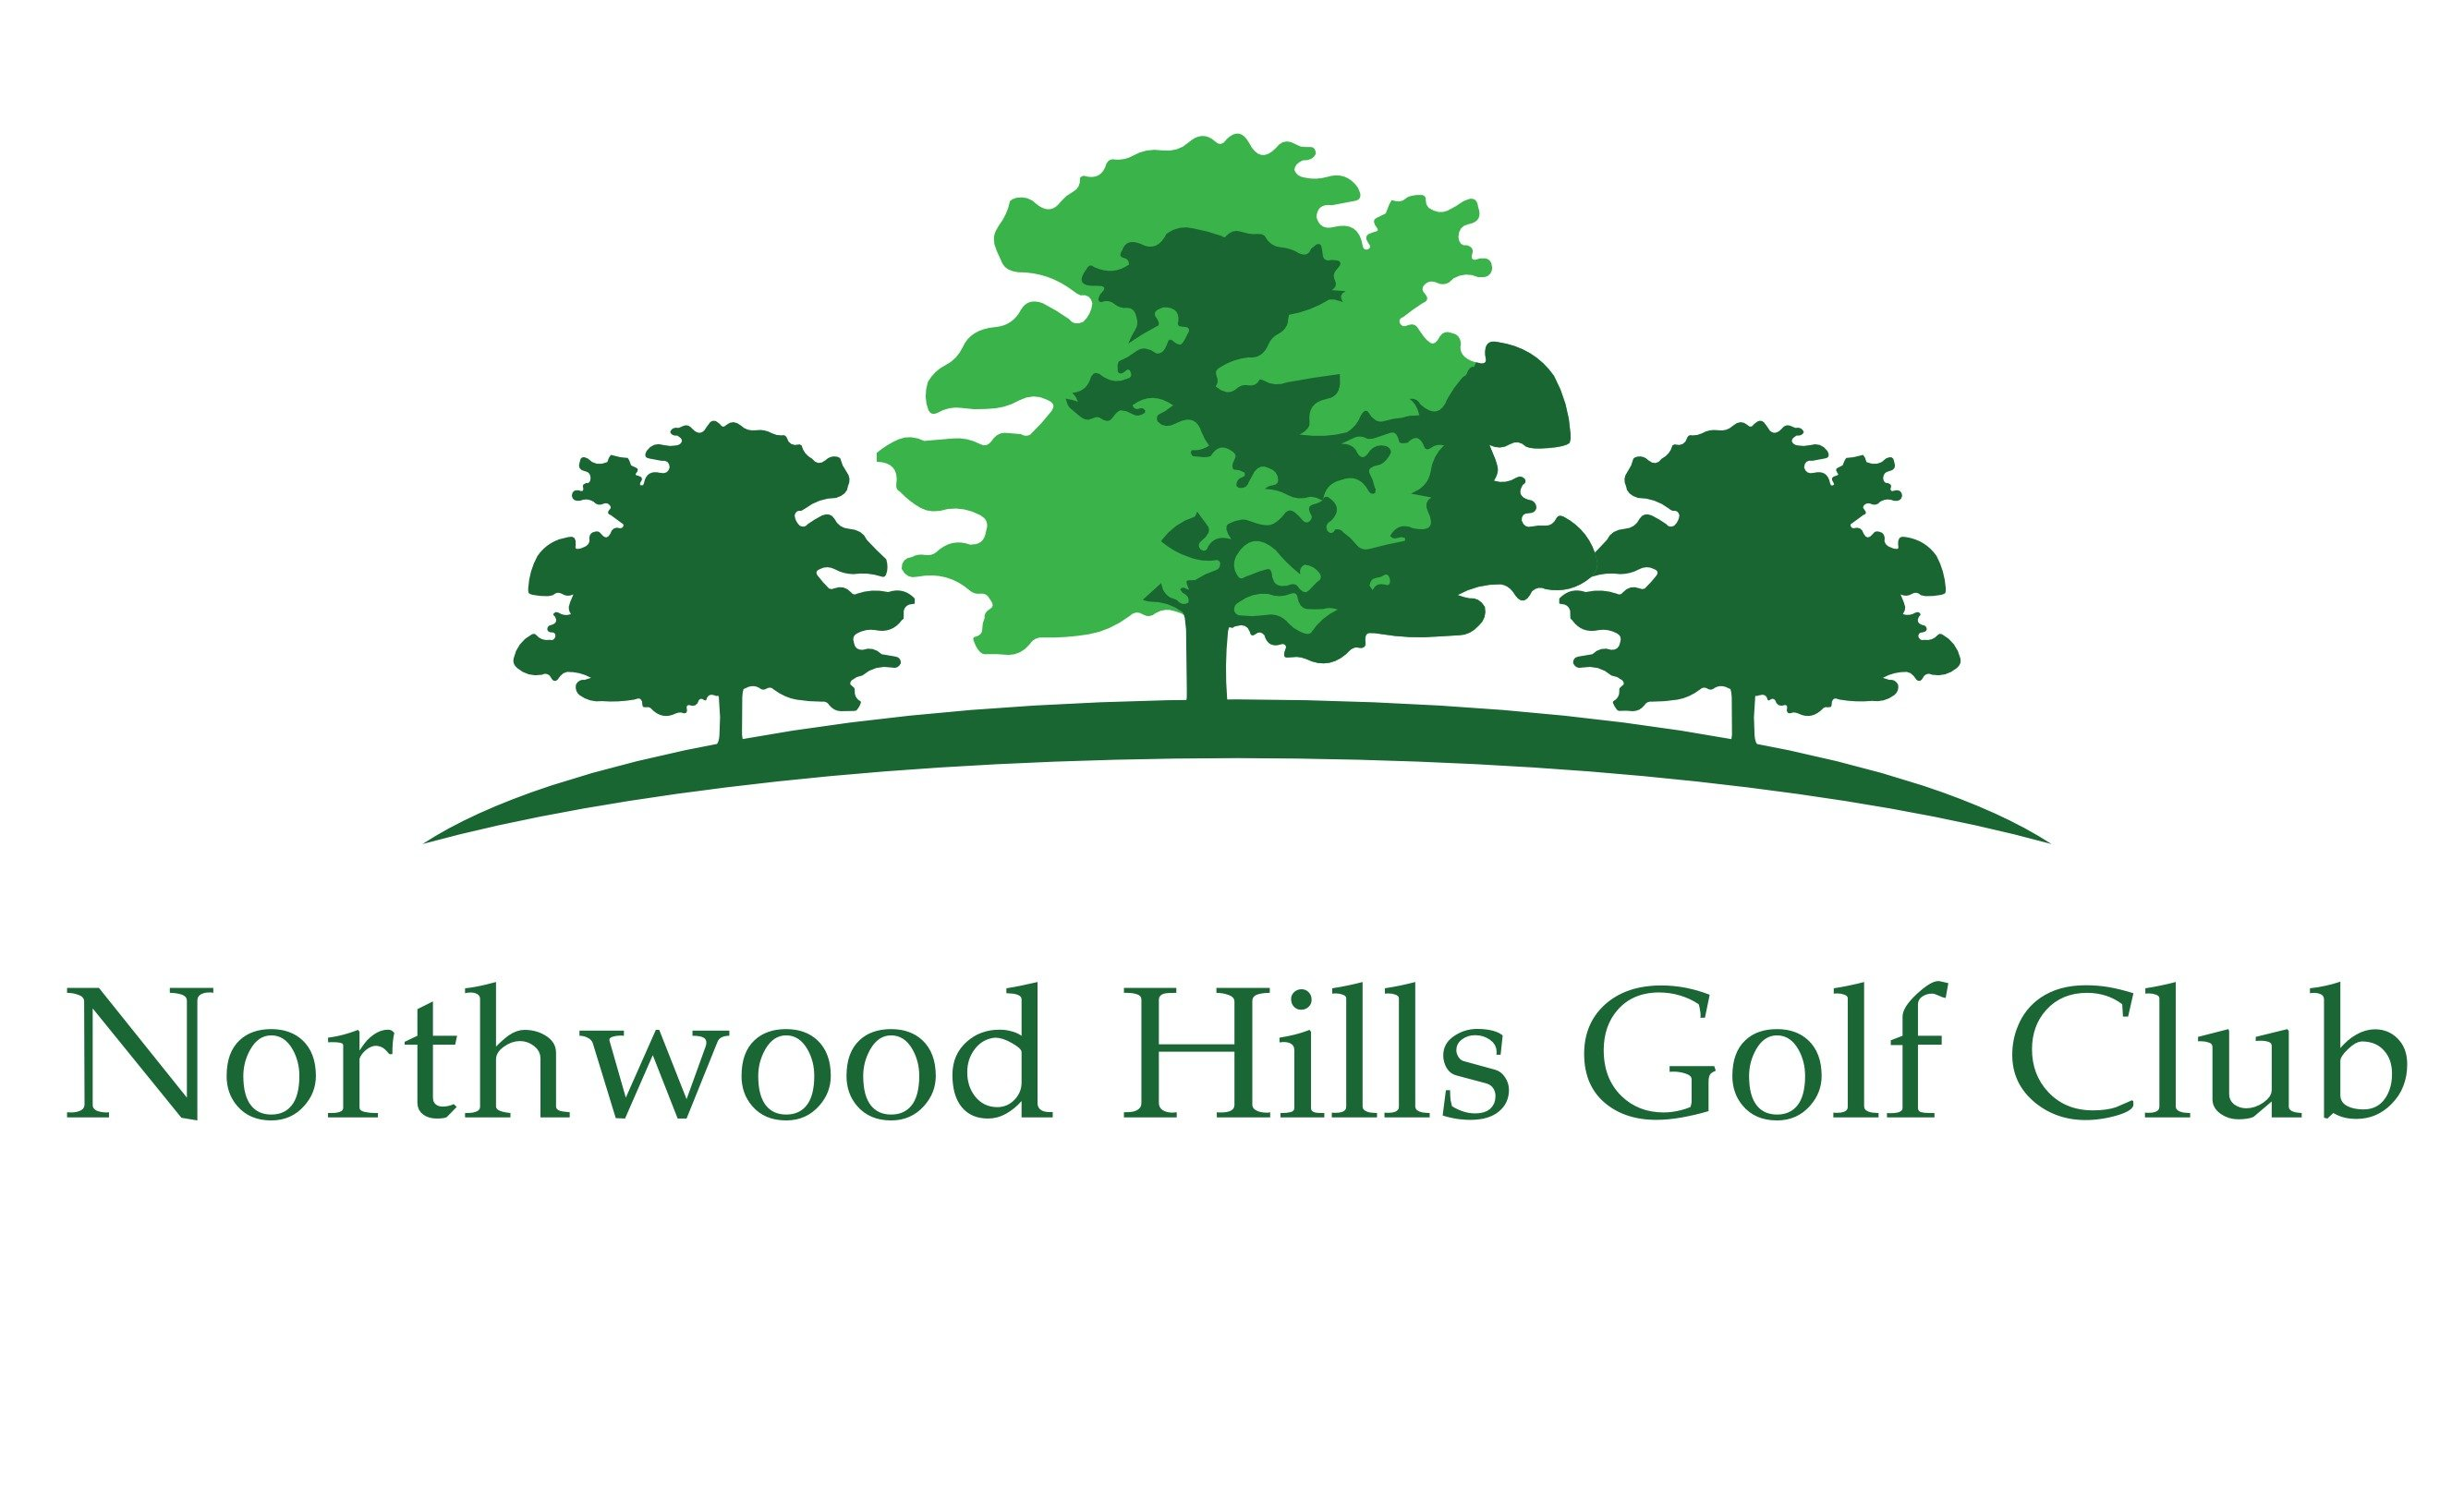 Northwood Hills Golf Club